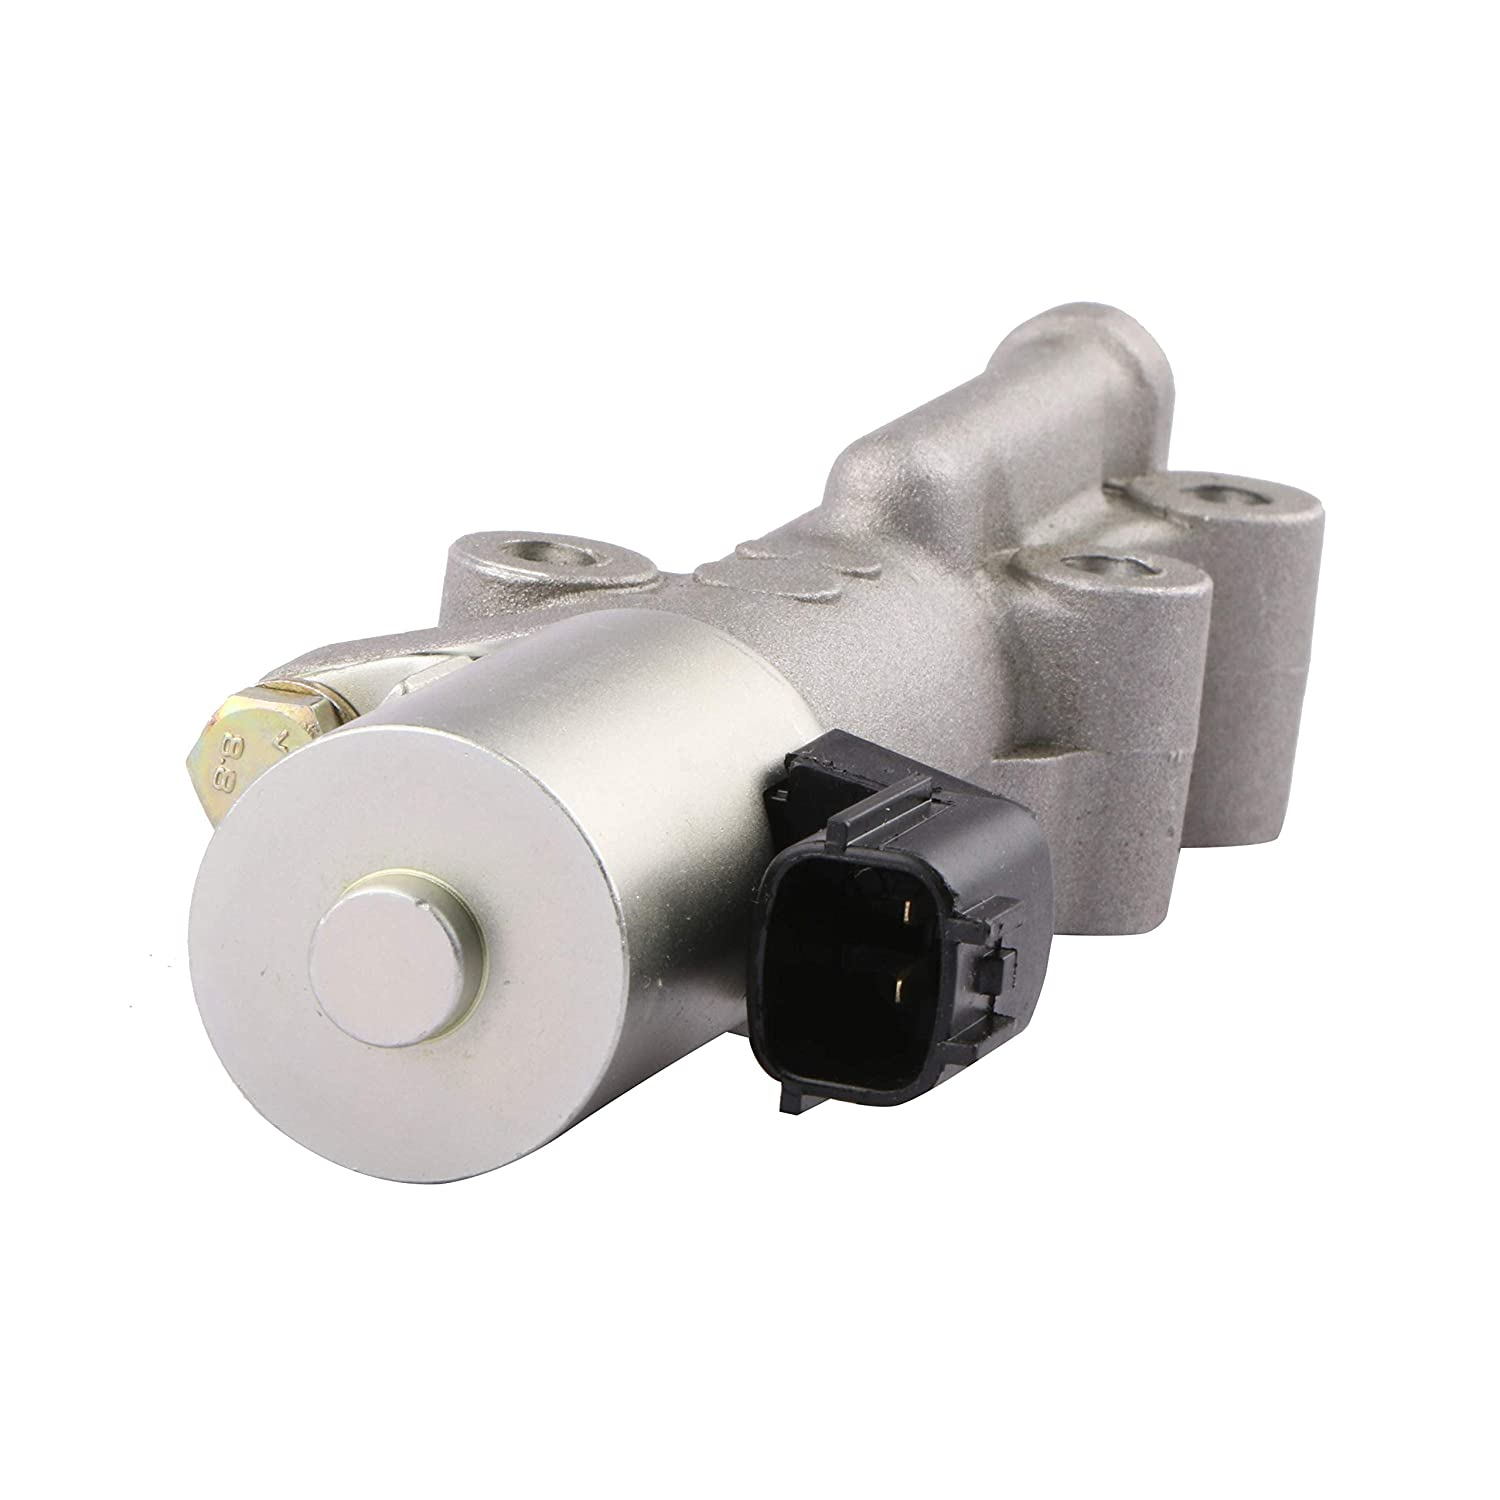 Set of 2 MOSTPLUS Left /& Right Oil Control VVT Valve Variable Timing Solenoid Replaces 23796-EA20B 23796-EA20A for V6 Engine on Nissan Infiniti